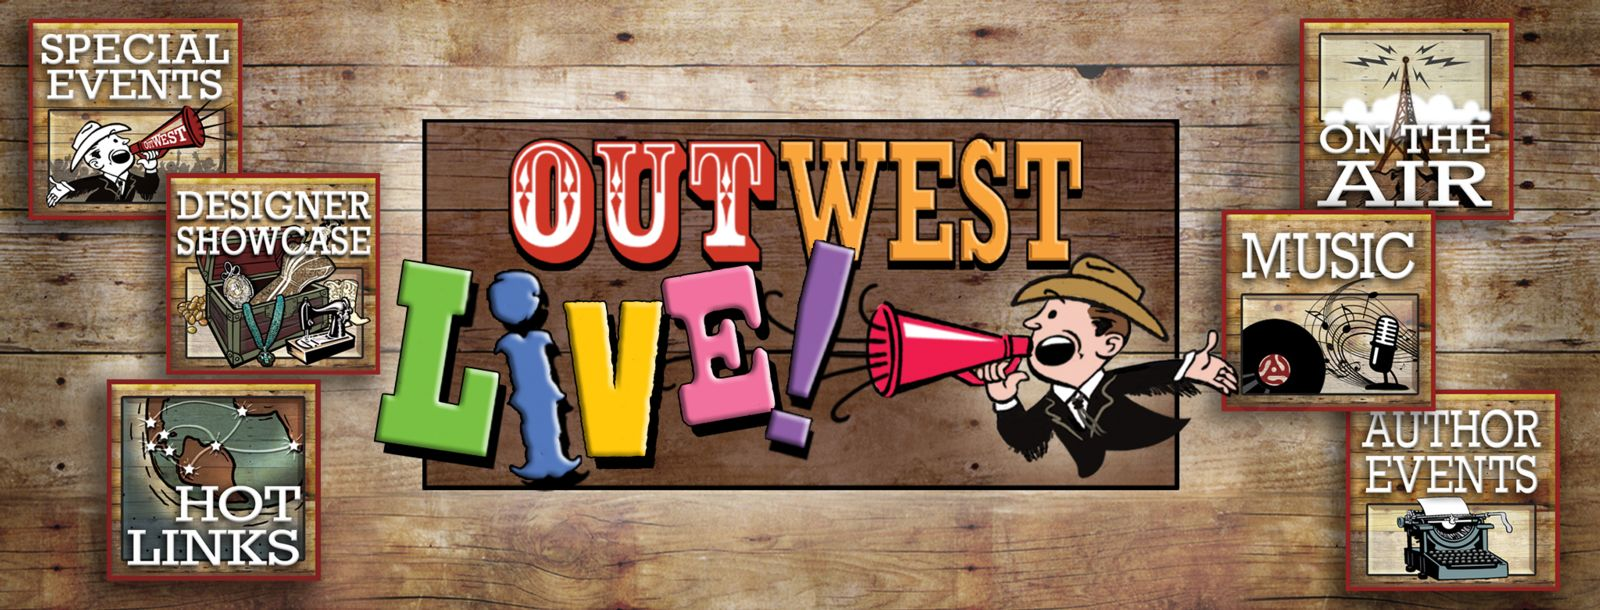 OutWest Live Special Events Page